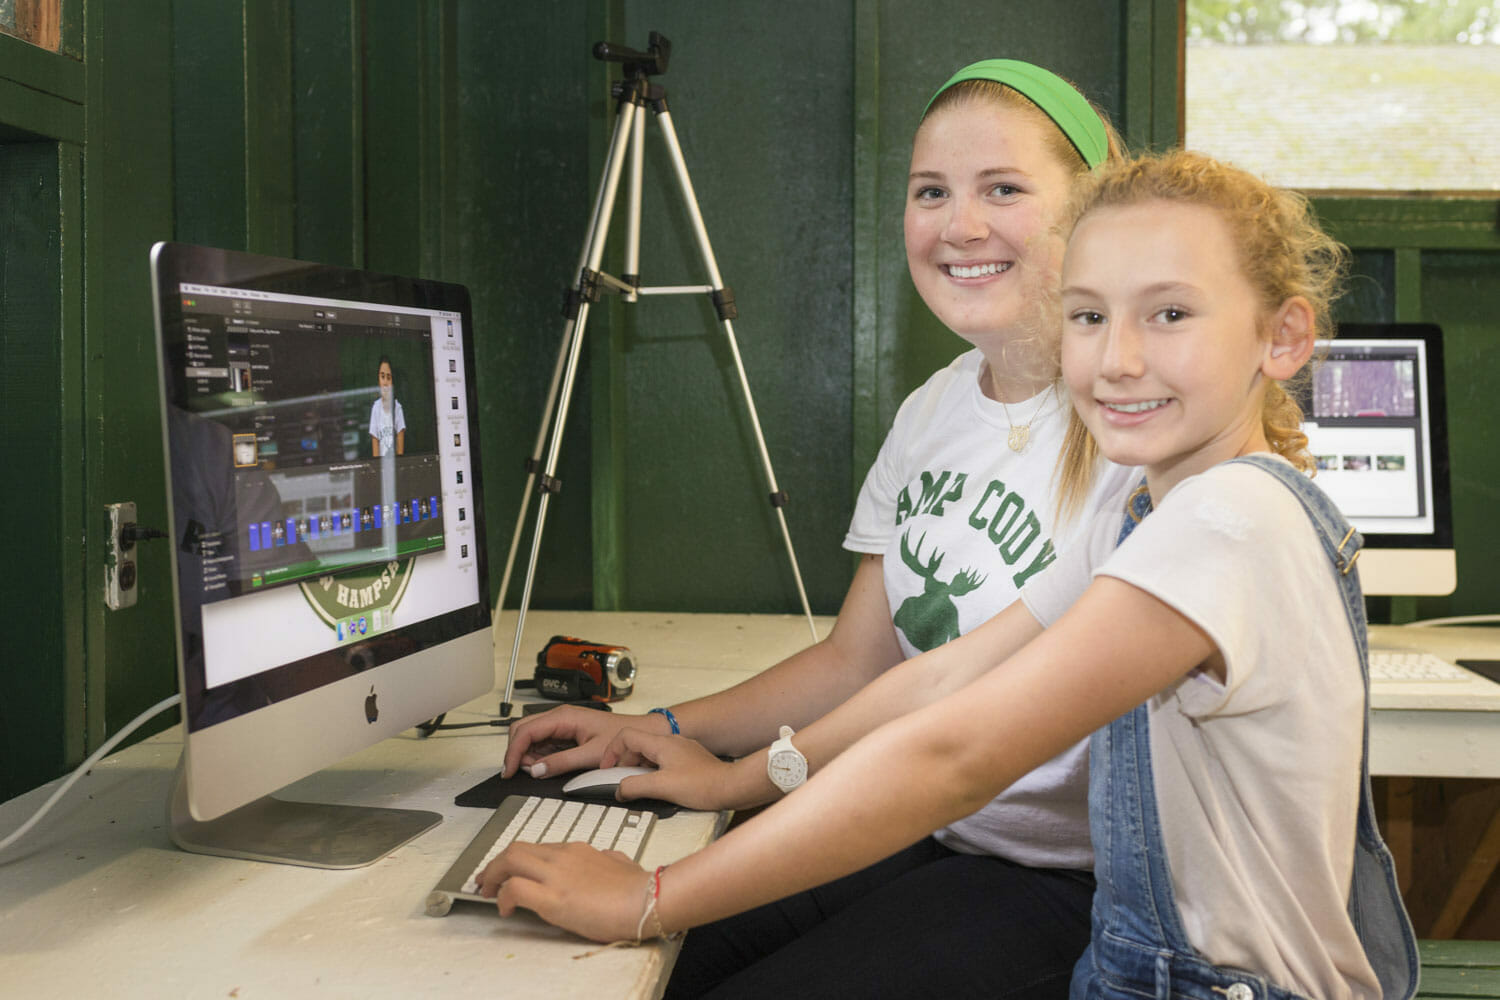 Female counselor and camper at computer class